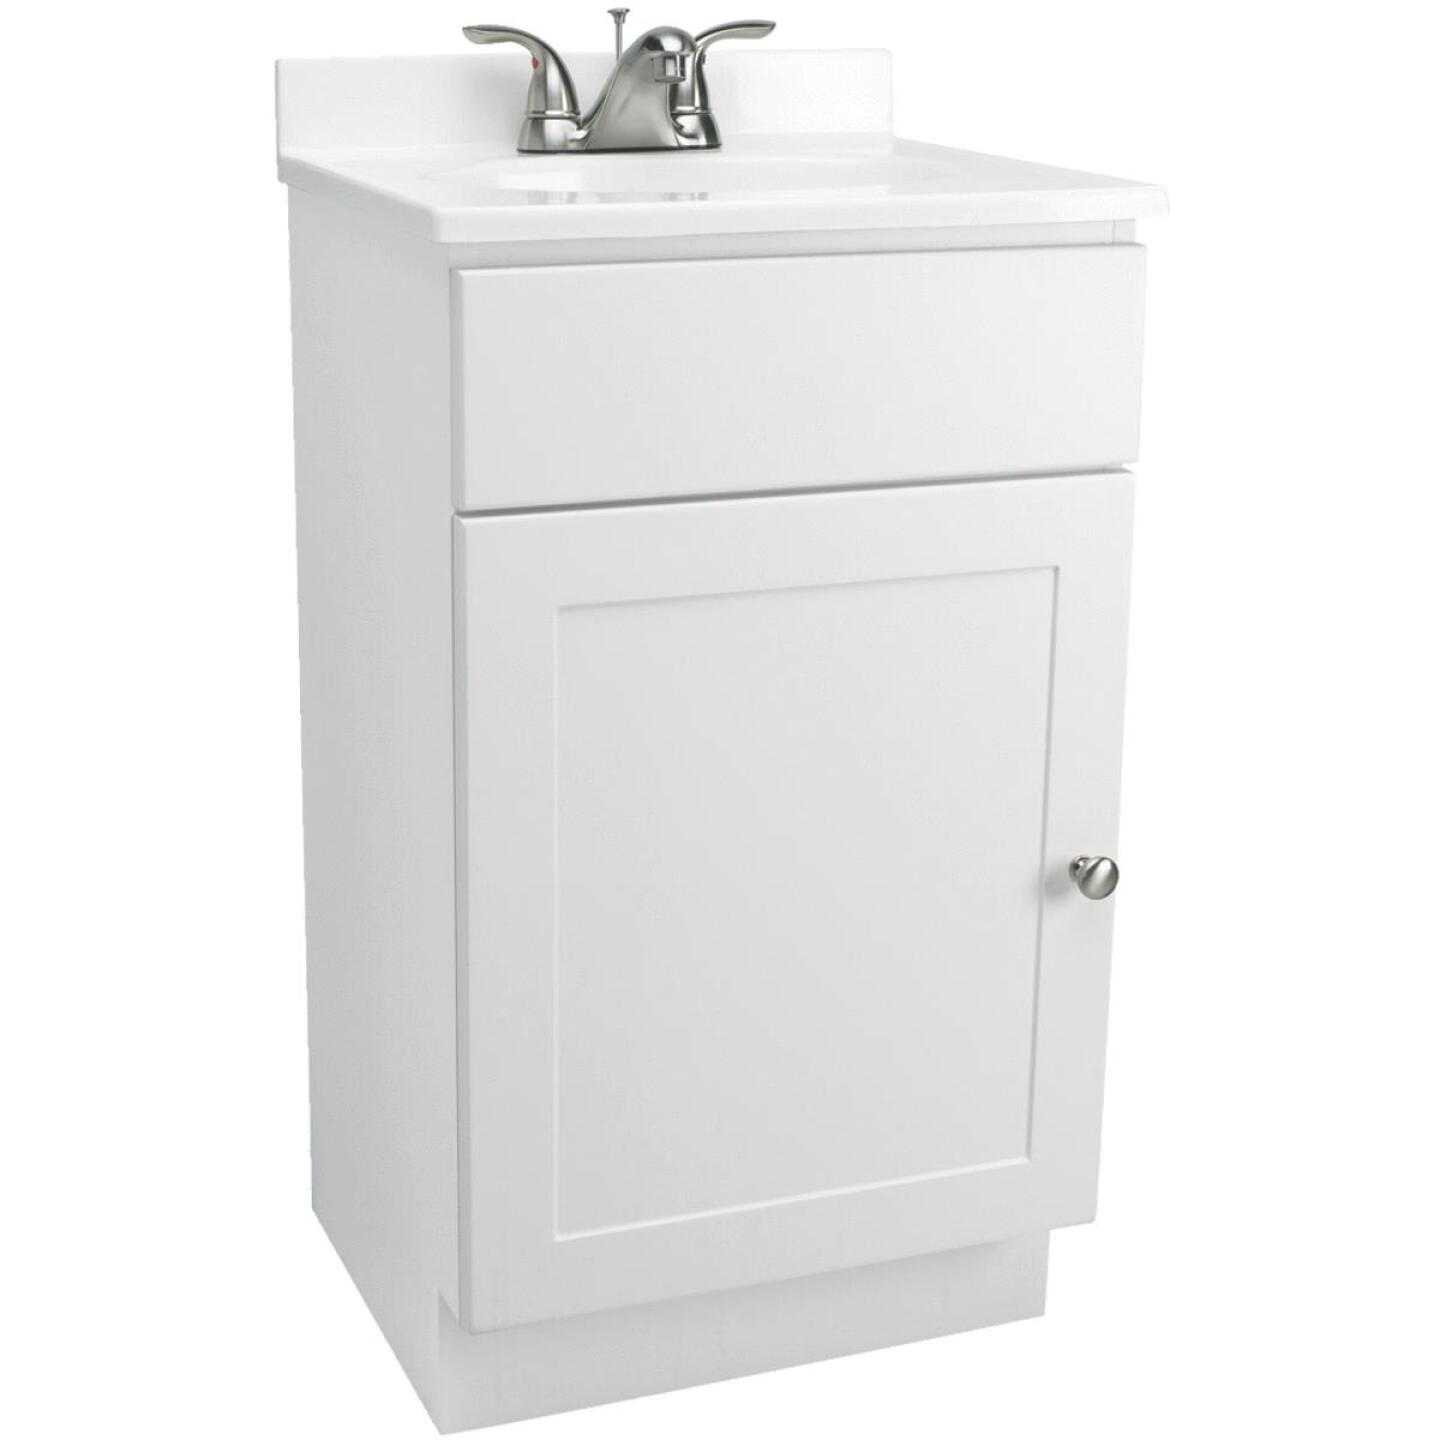 Design House White 18 In. W x 31-1/2 In. H x 16 In. D Combo Vanity with Cultured Marble Top Image 1